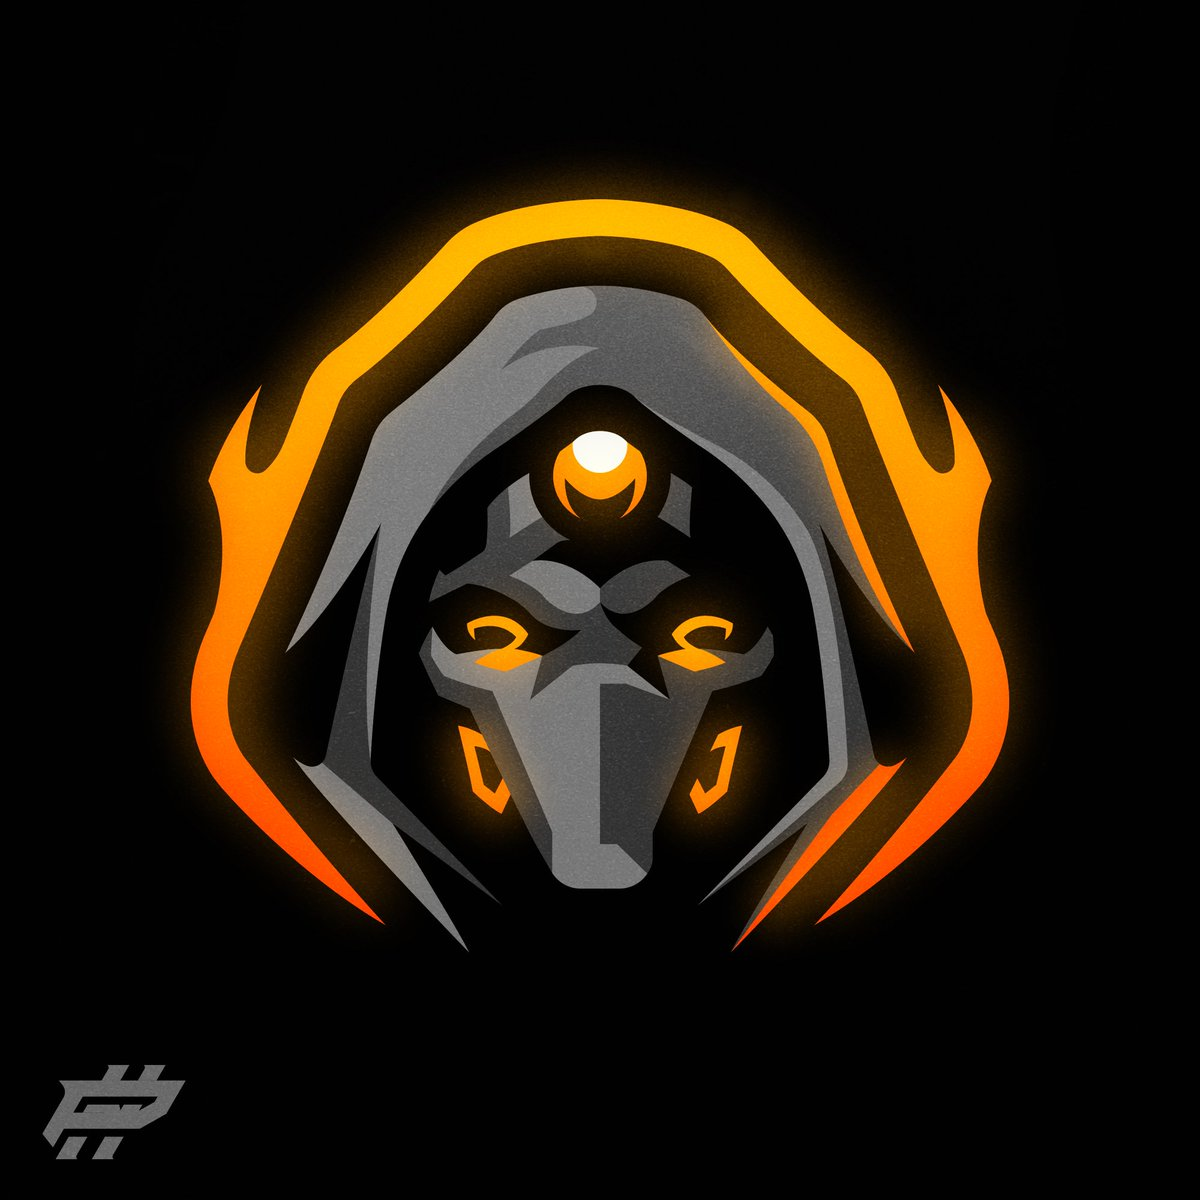 Astral Mascot Logo, i hope for you support!   80$  Custom name Custom colors AI + PNG files  IF YOU WANT TO PURCHASE THIS LOGO, DM ME ON TWITTER  #mascot #logo #esports #designpic.twitter.com/UwLiplTpIj